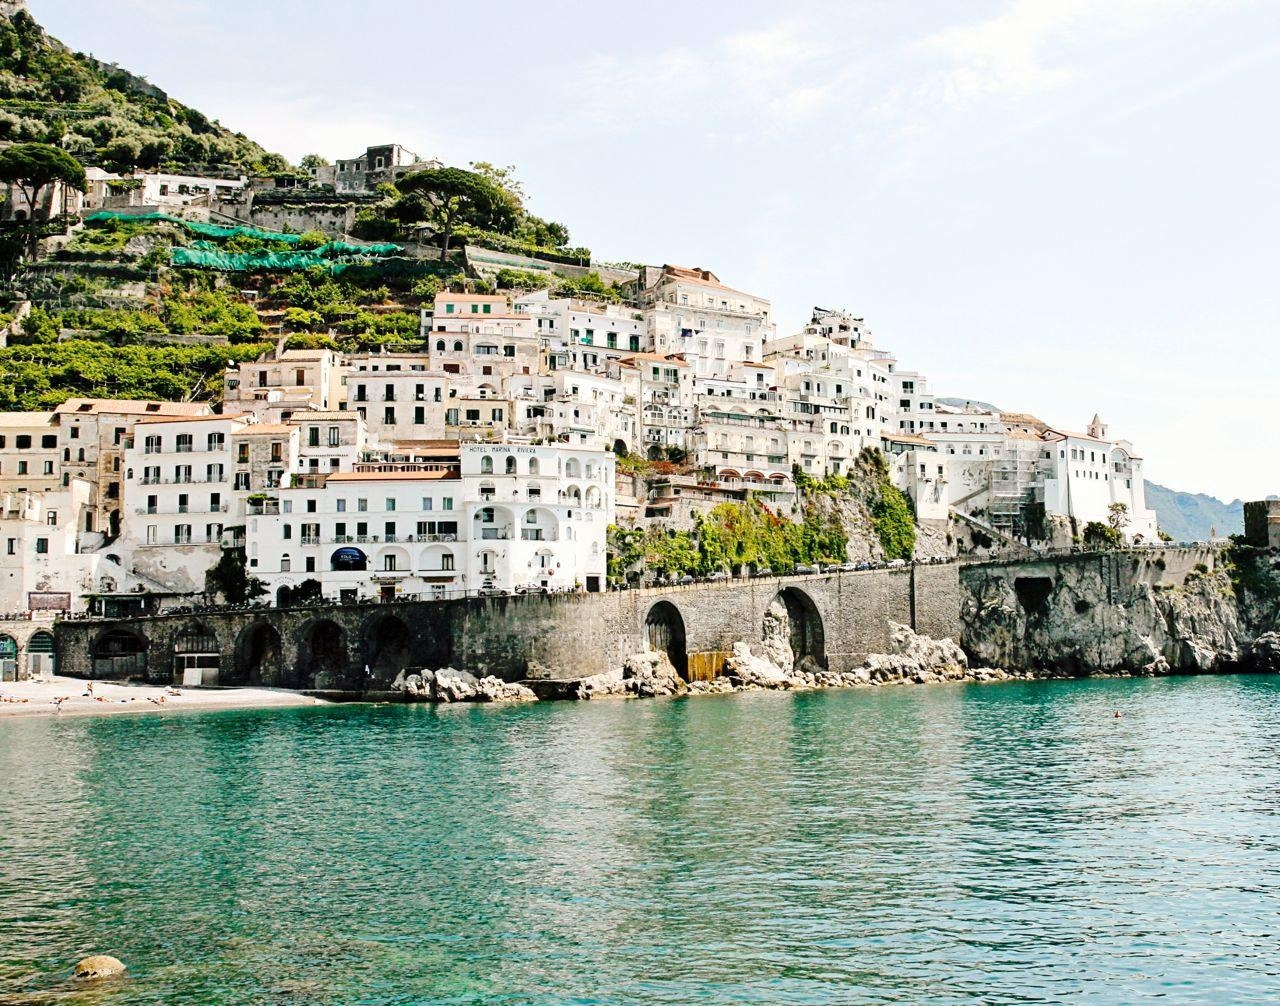 Amalfi Photography – Italy Photography – Amalfi Coast Pictures Regarding Italian Cities Wall Art (View 2 of 20)